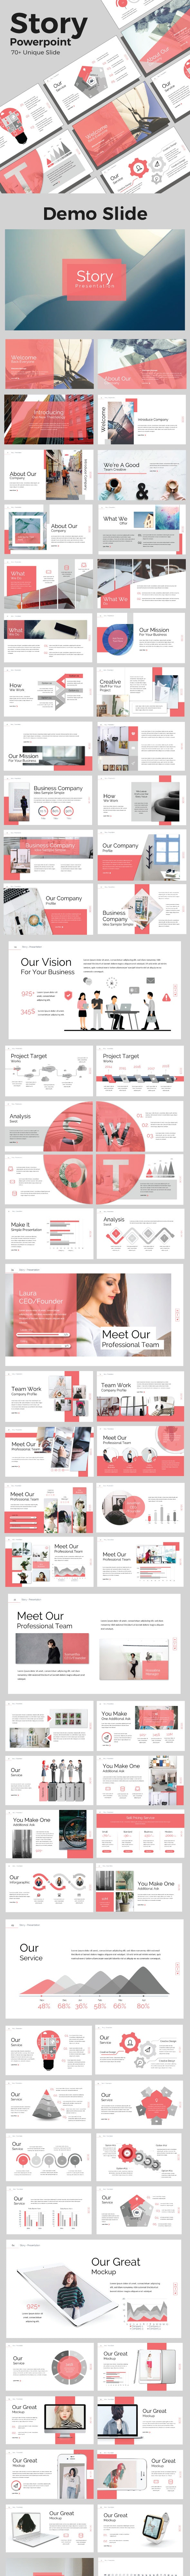 Story Powerpoint - Business PowerPoint Templates